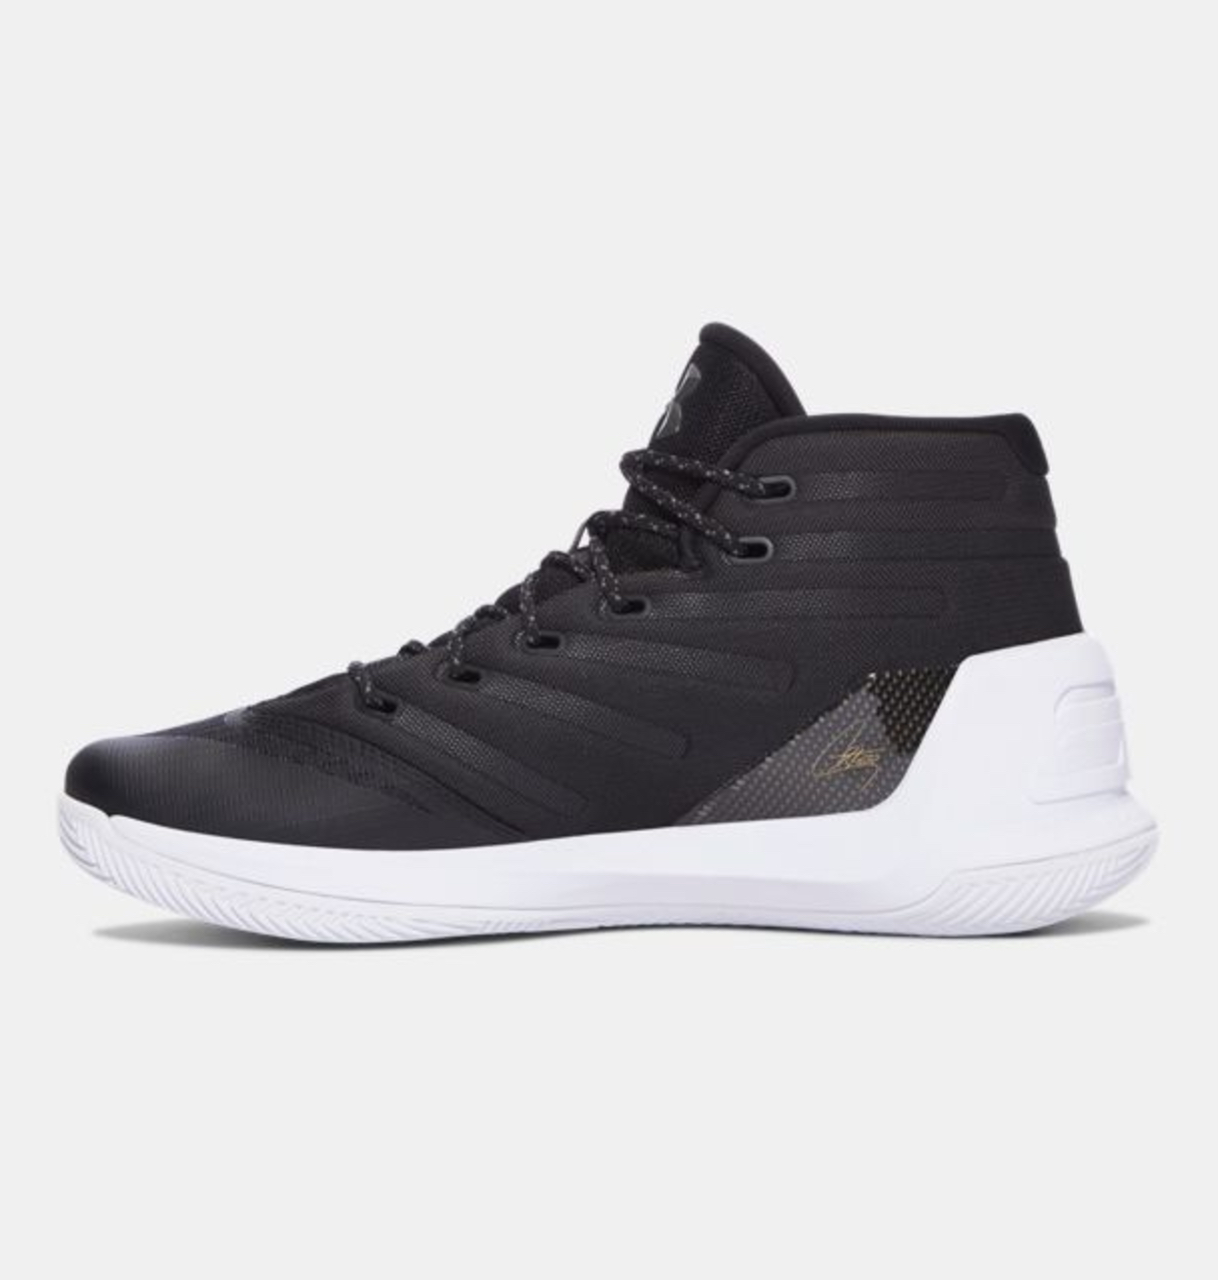 under armour curry 3 black white 1